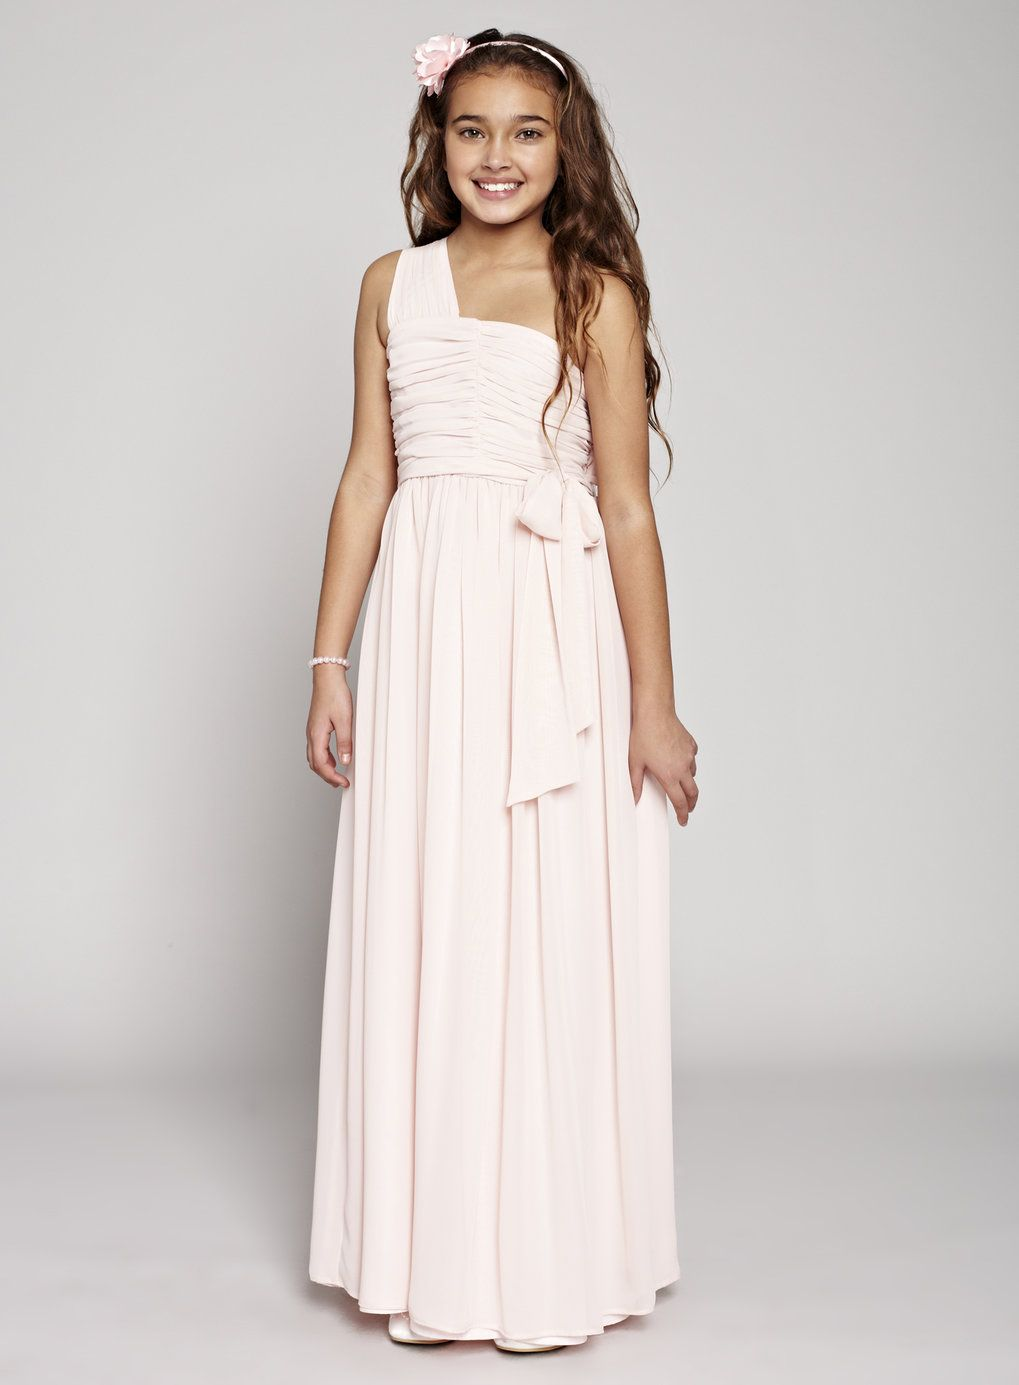 Teen blush one shoulder bridesmaid dress wedding bhs for Teenage dresses for a wedding